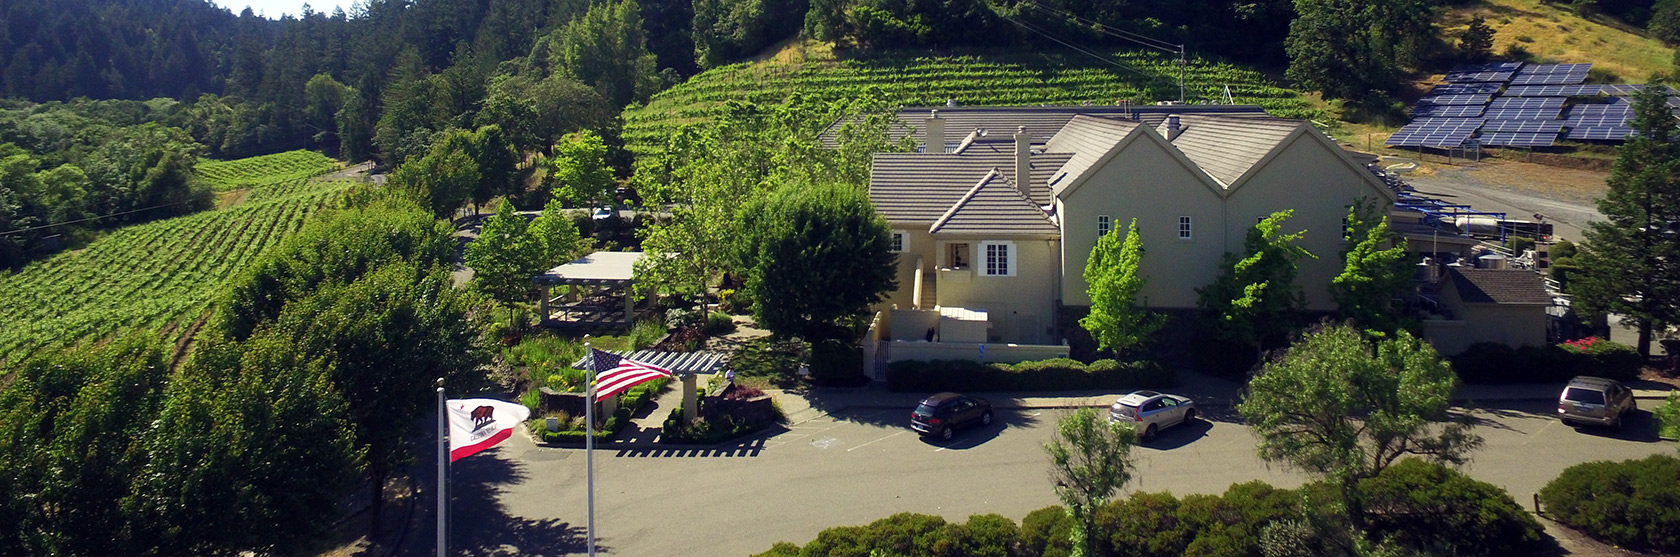 Hartford Winery from the air